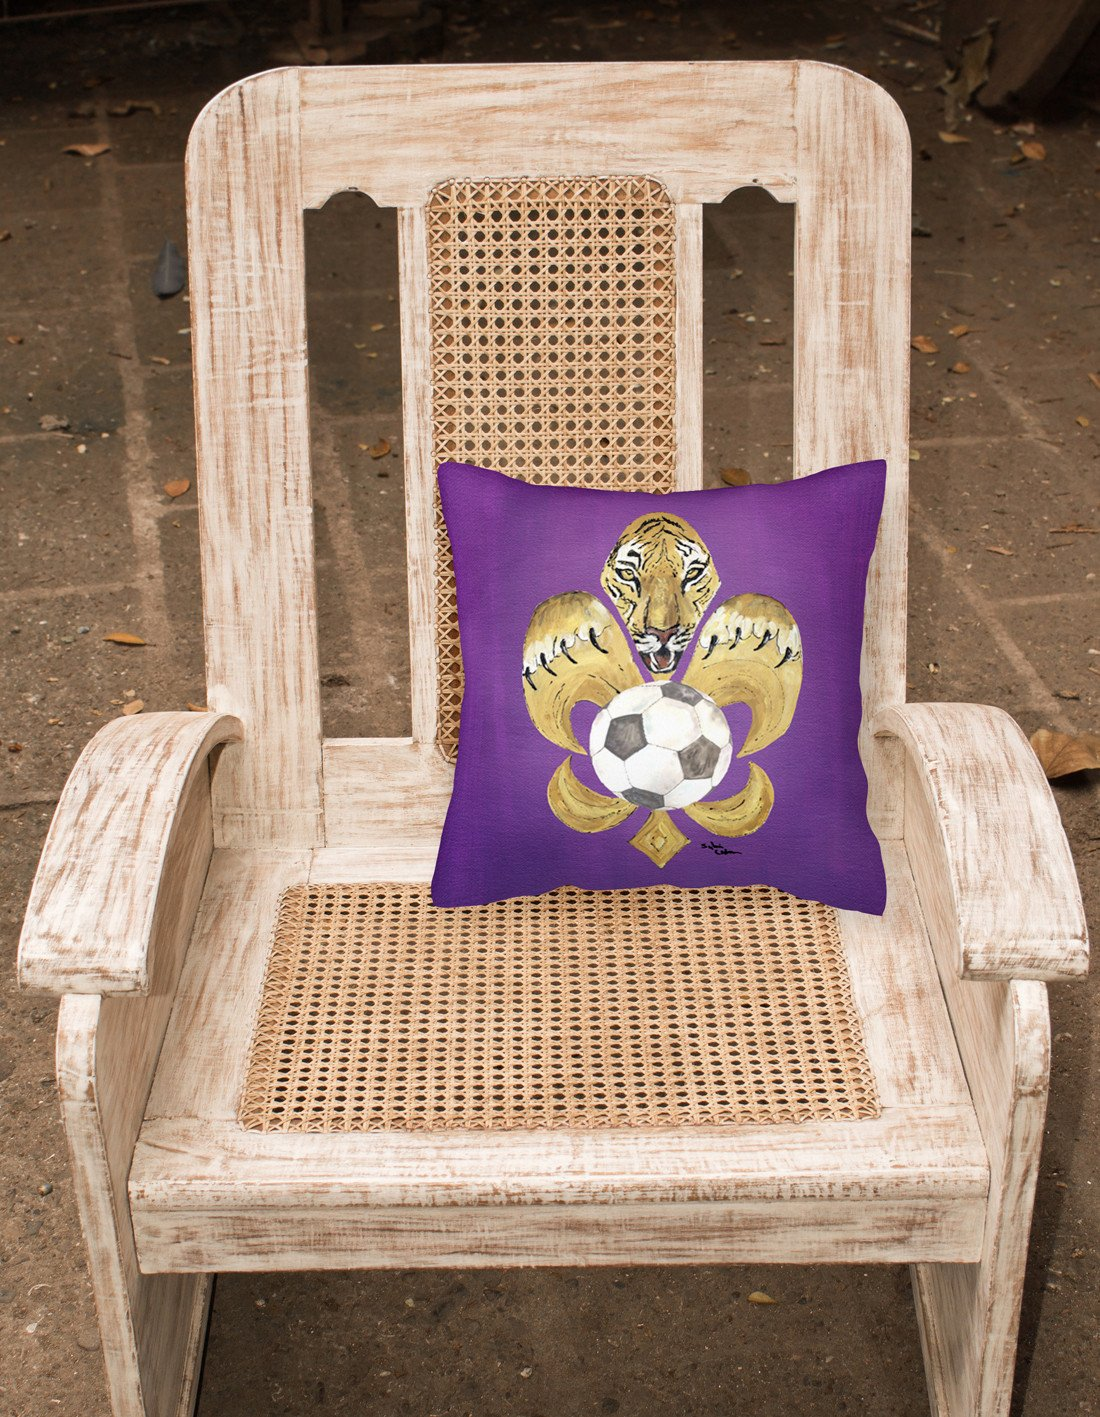 Tiger Fleur de lis Soccer Fabric Decorative Pillow 8477PW1414 by Caroline's Treasures